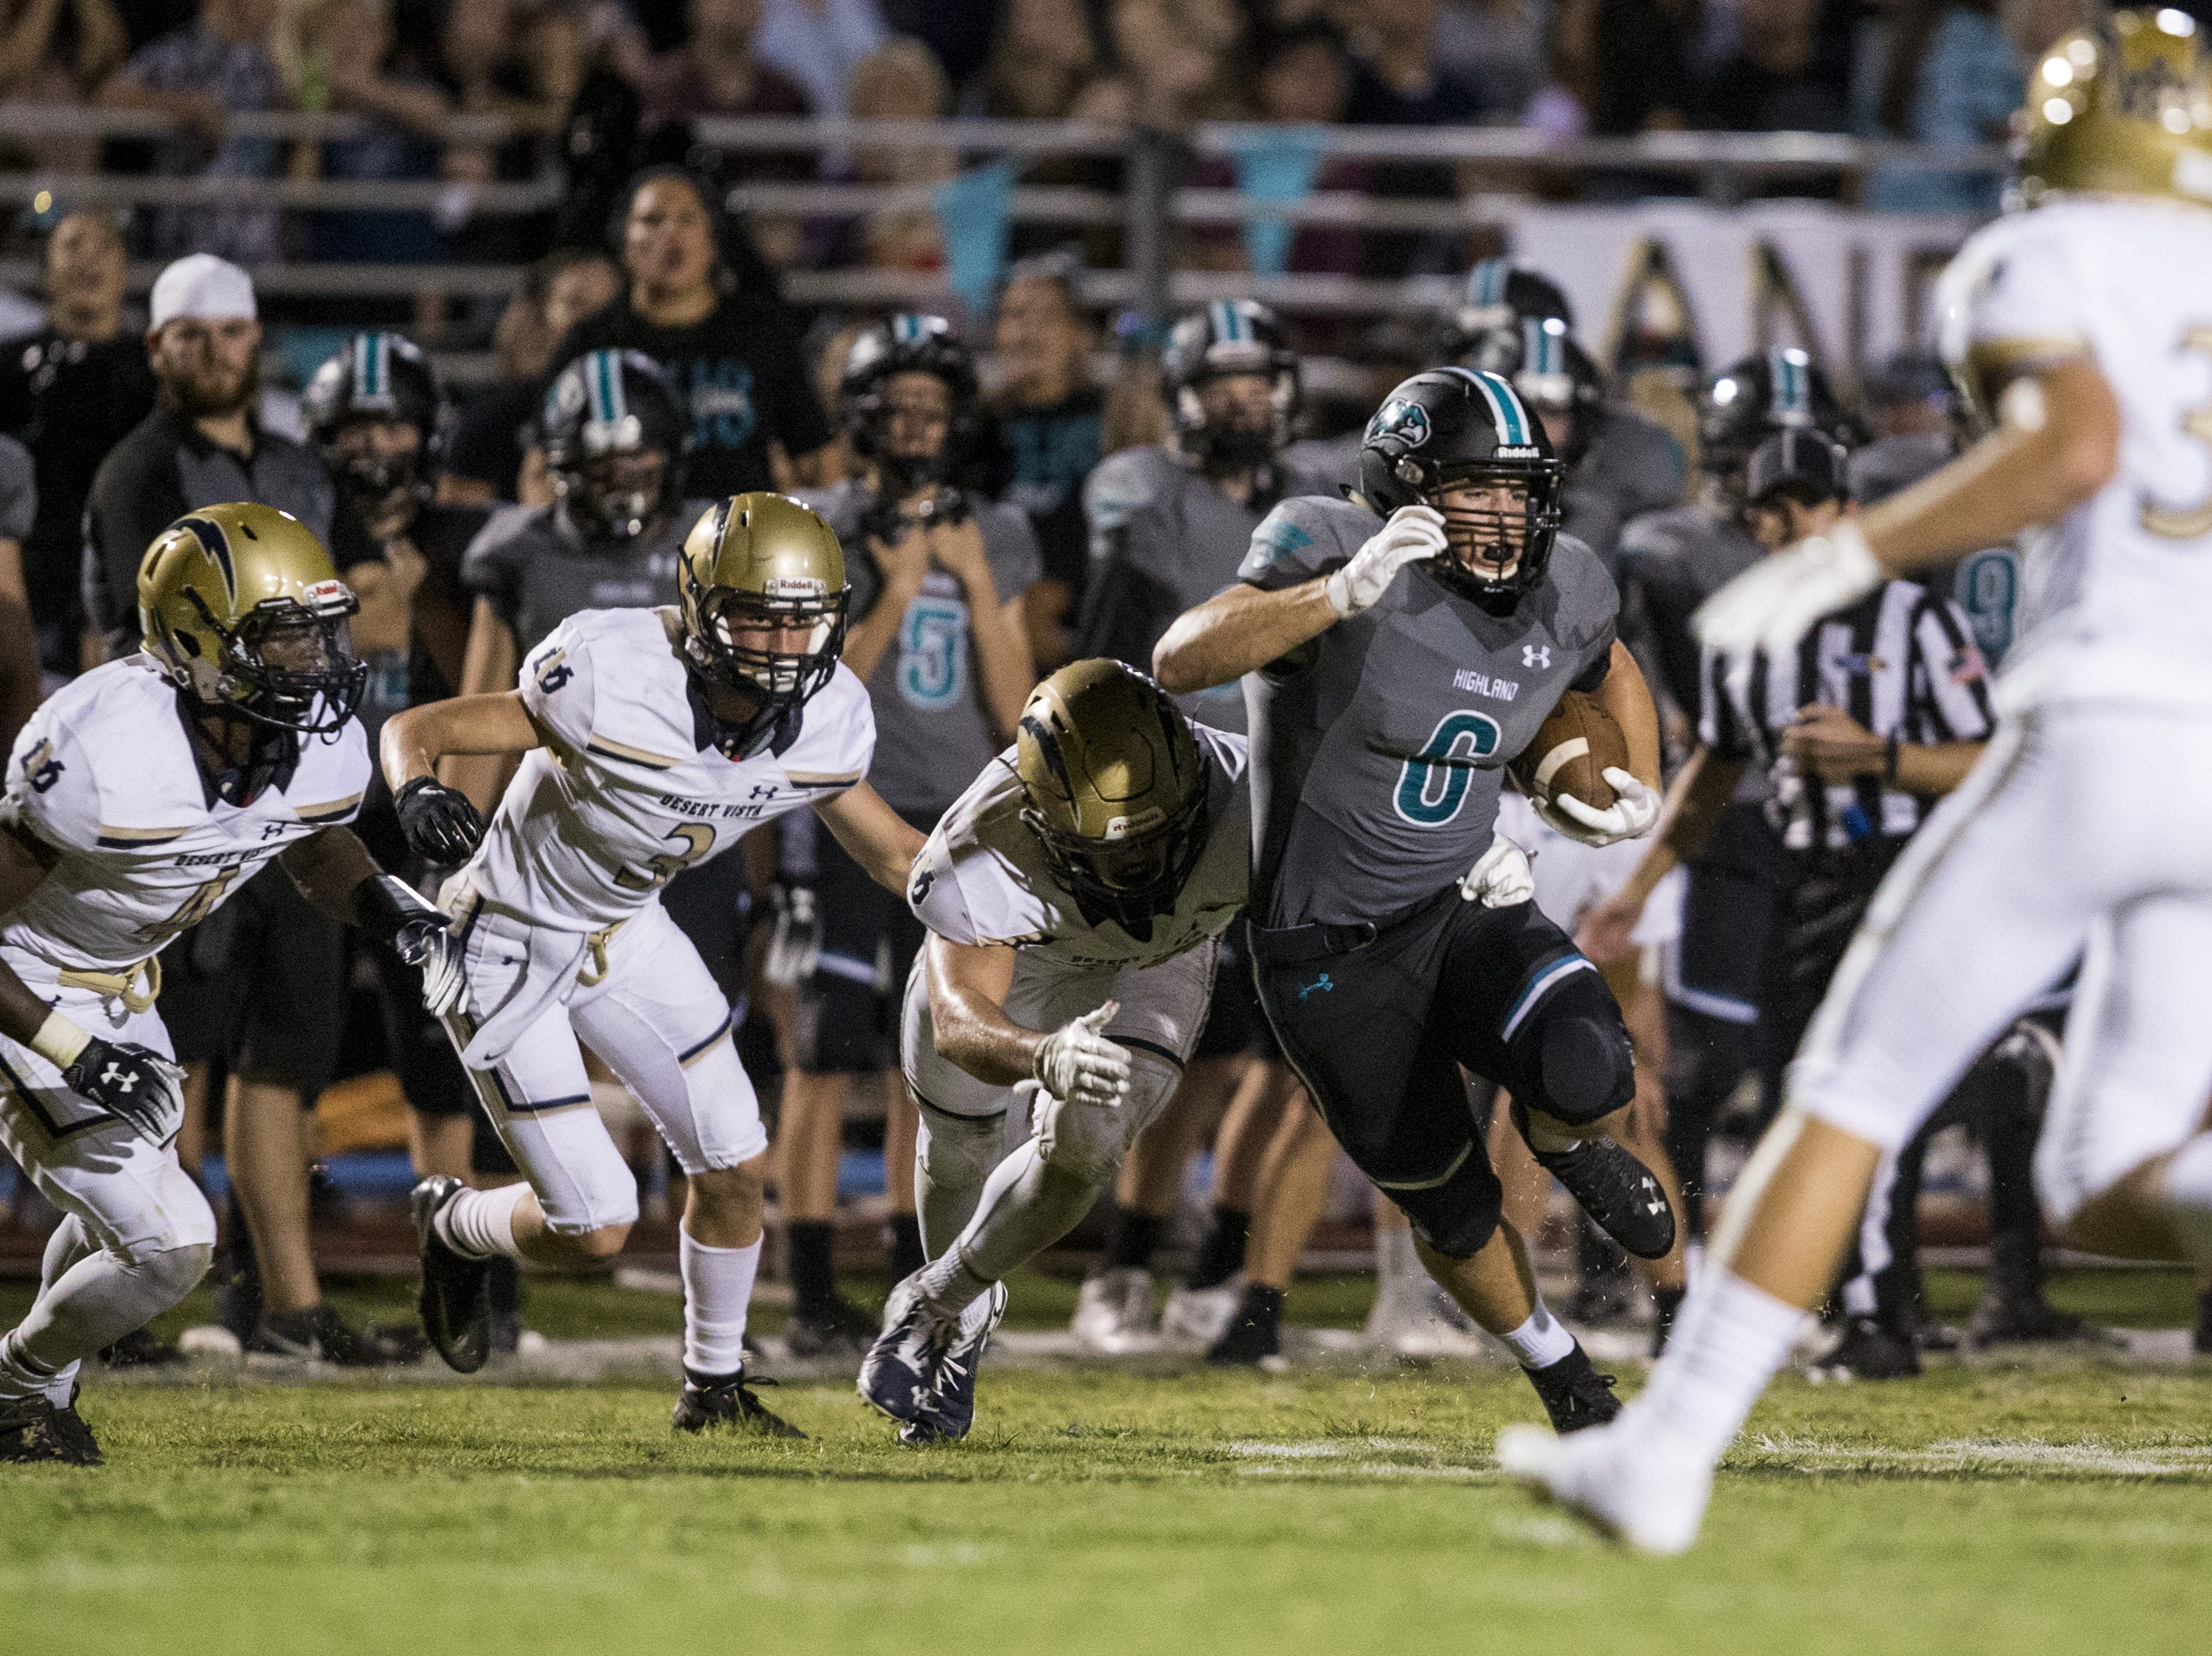 Highland's Daniel Wood rushes against Desert Vista in the 2nd quarter on Friday, Sept. 21, 2018, at Highland High School in Gilbert, Ariz.   #azhsfb